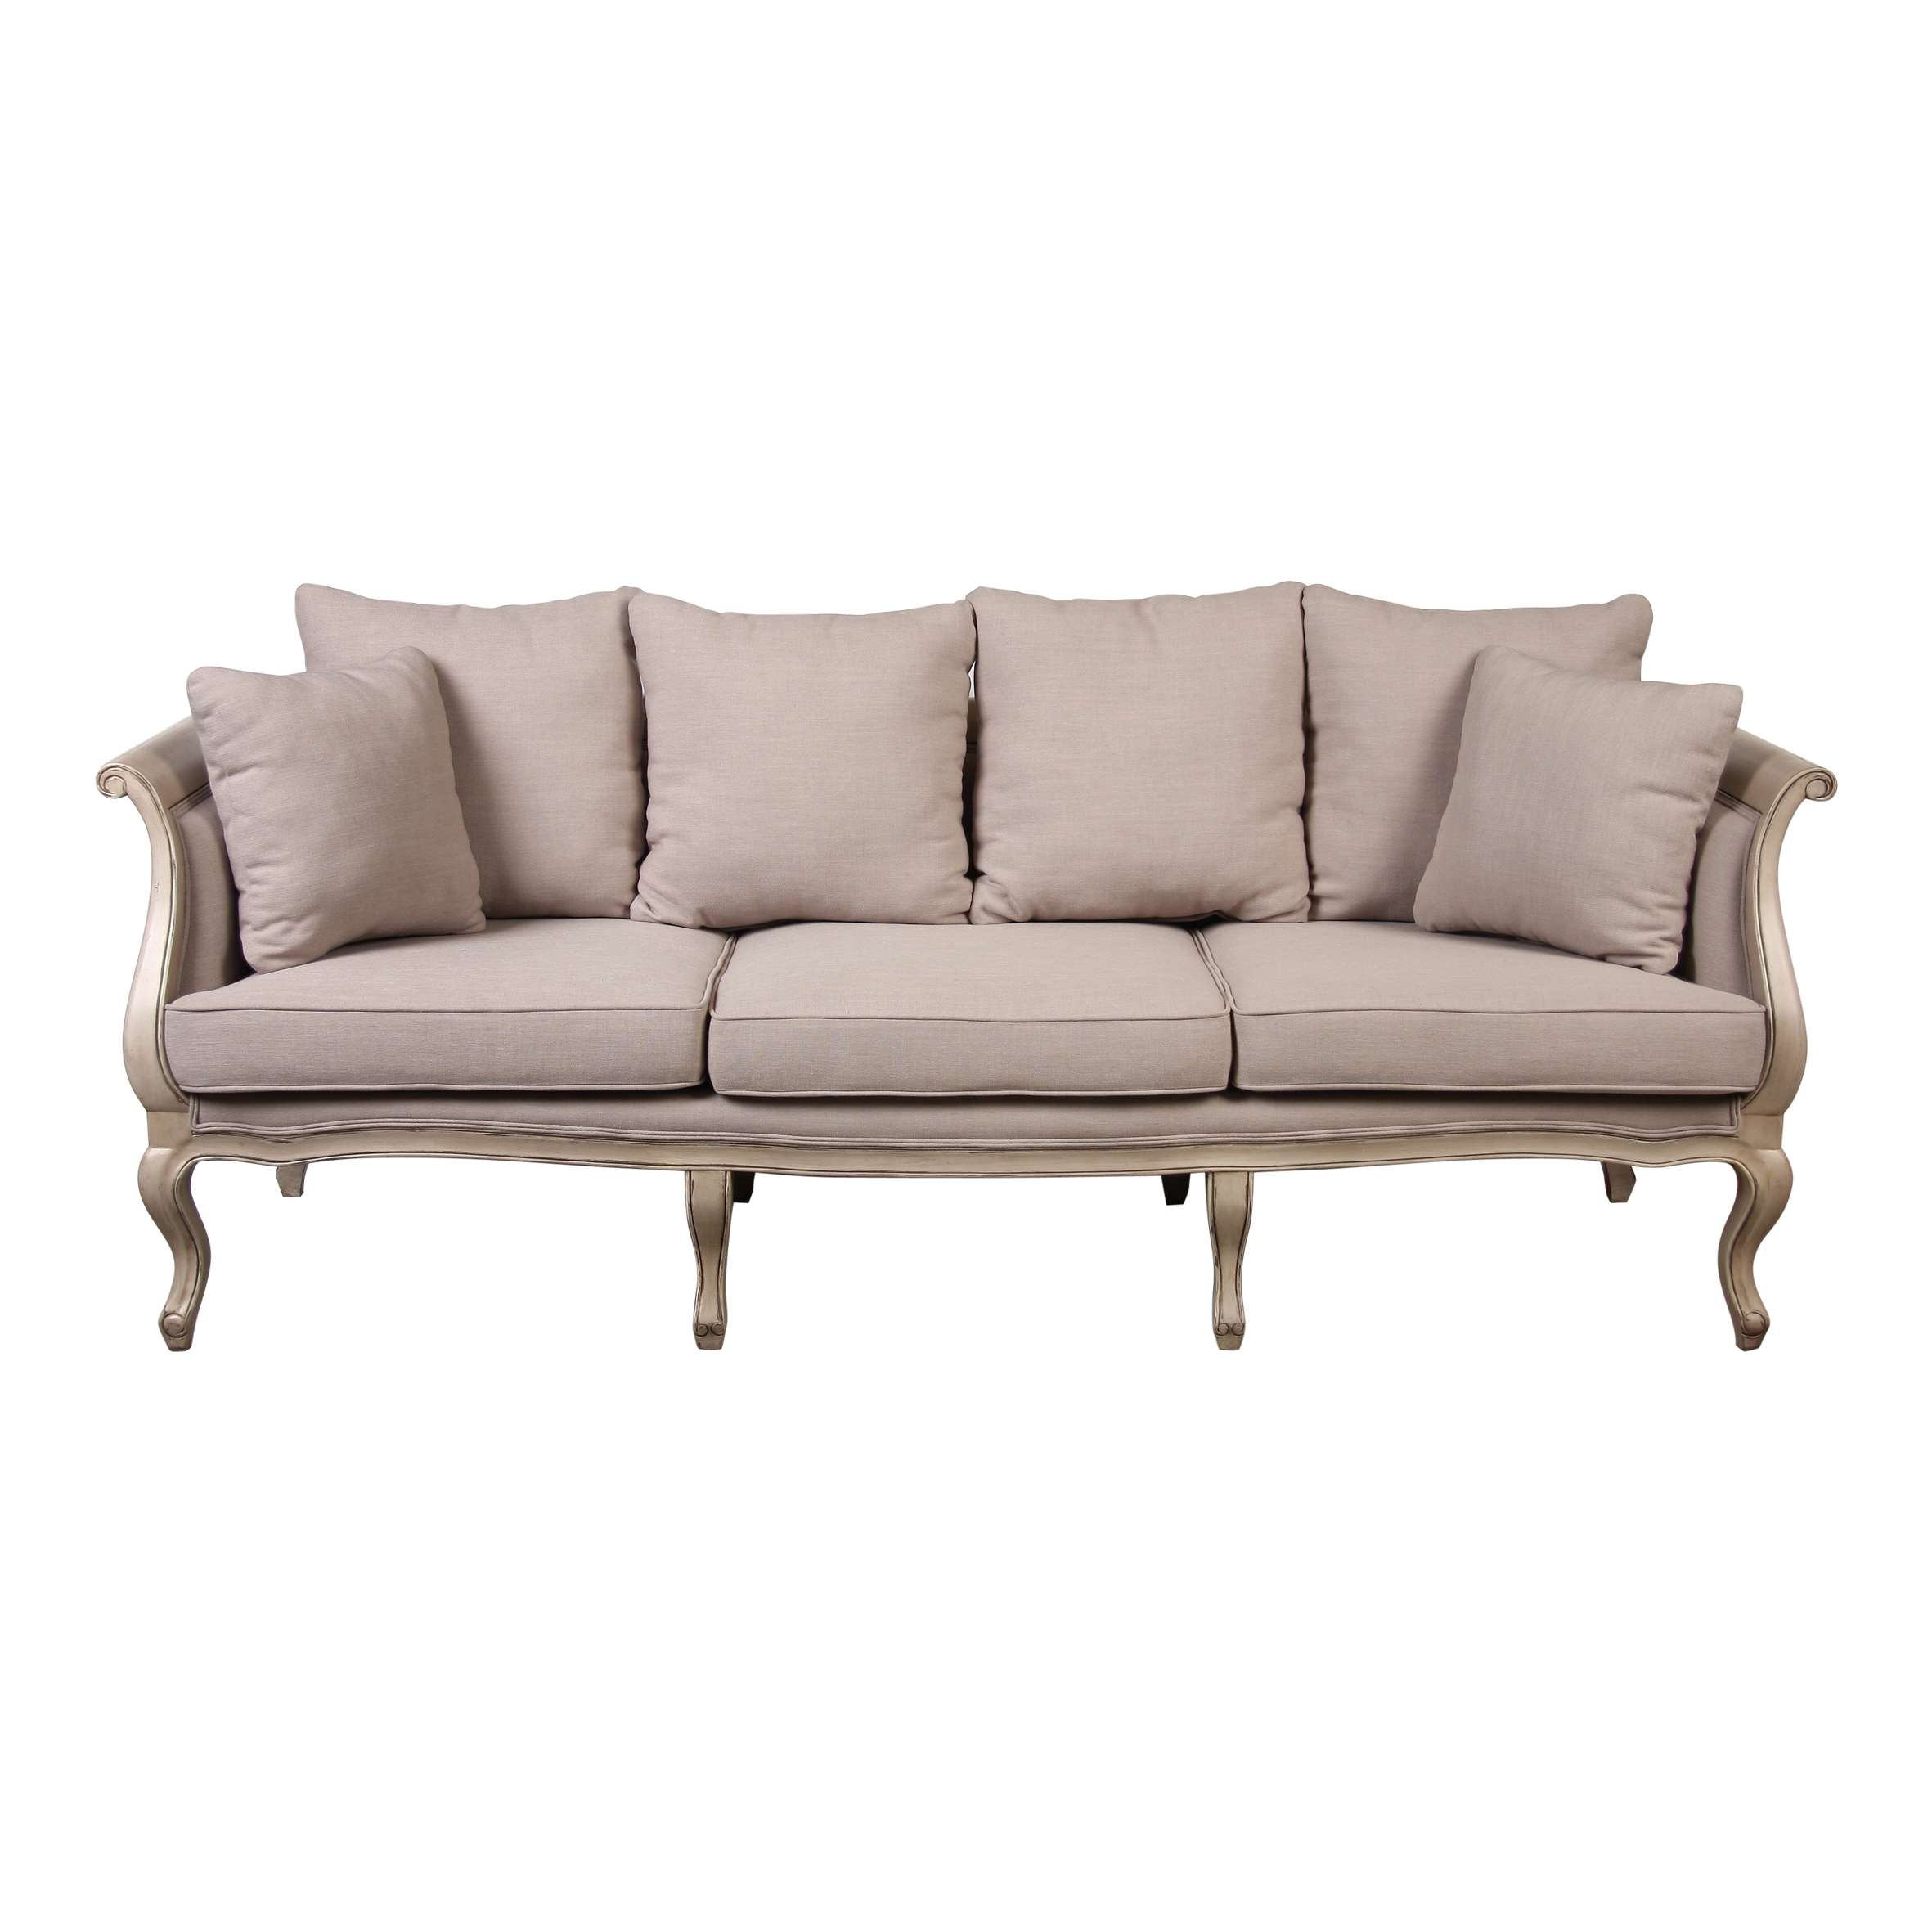 COUNTRY CORNER Sofa 3 Sitzer Sofas Sofas & Couches